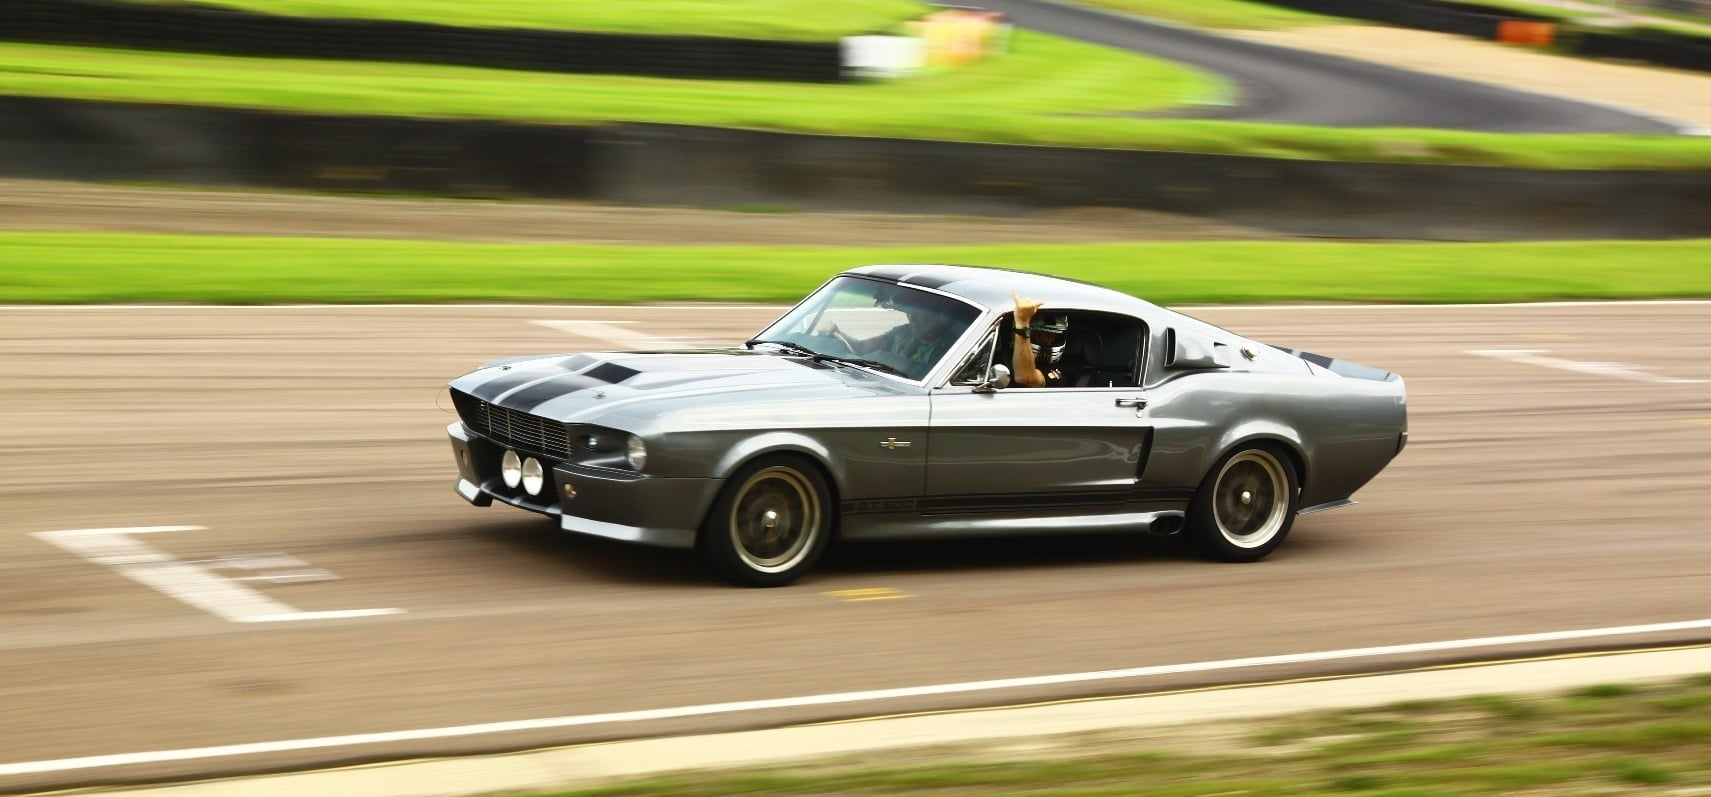 classic ford mustang gt500 driving experience various circuits experience days. Black Bedroom Furniture Sets. Home Design Ideas